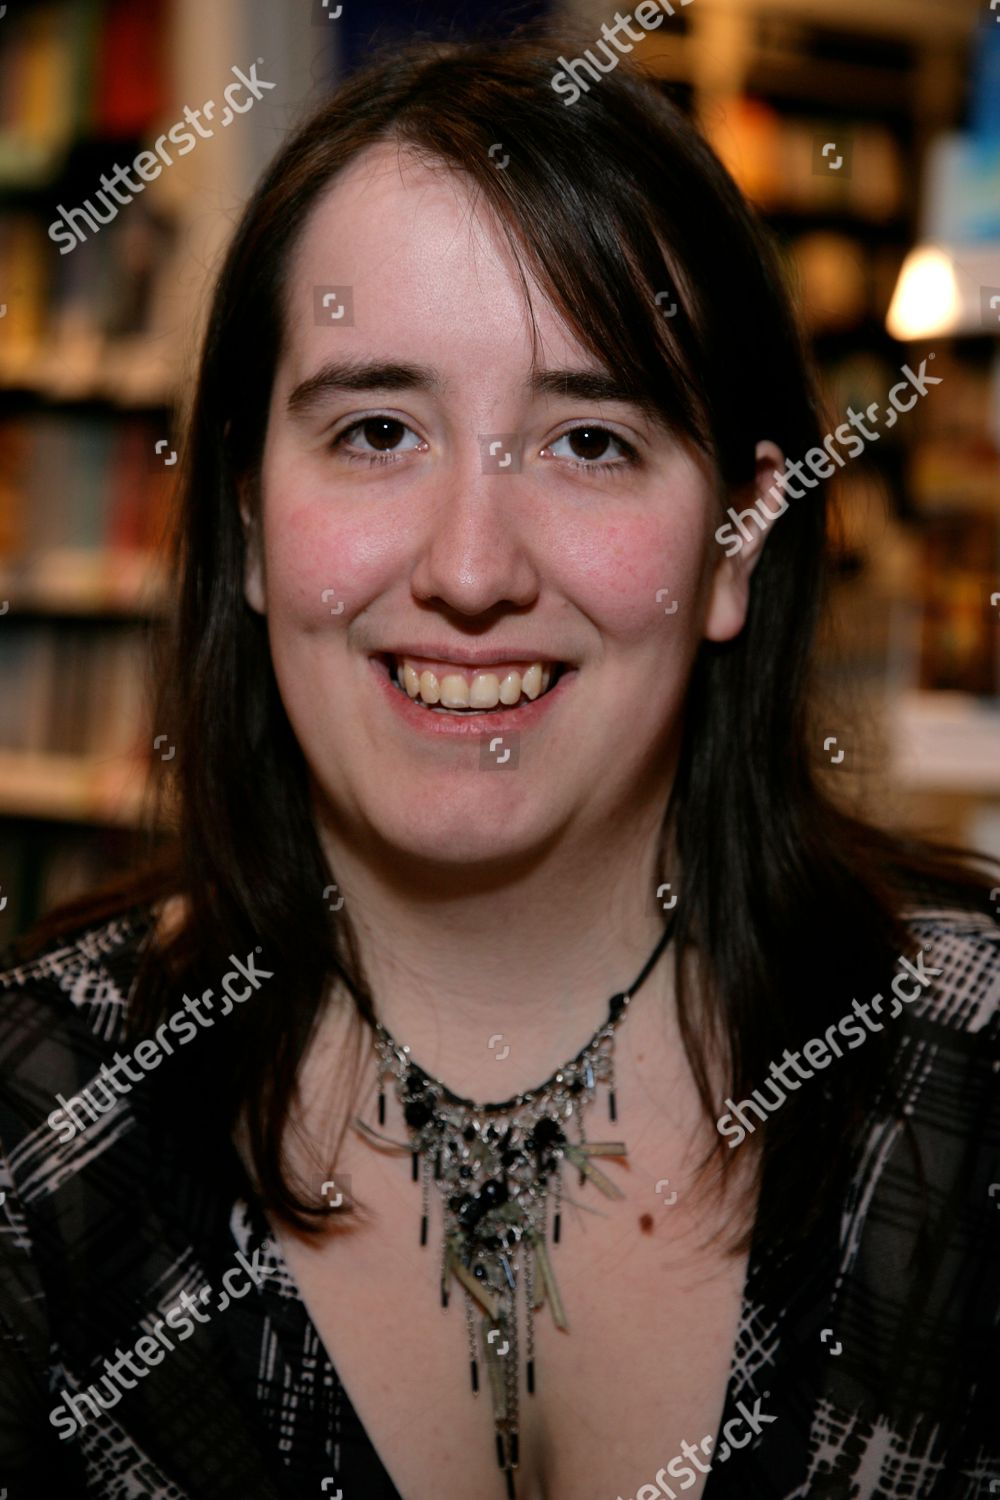 Stock-foto af 'Child Of The Hive' Jessica Meats Book Promotion, Waterstones, Reading, Britain - 13 Feb 2010